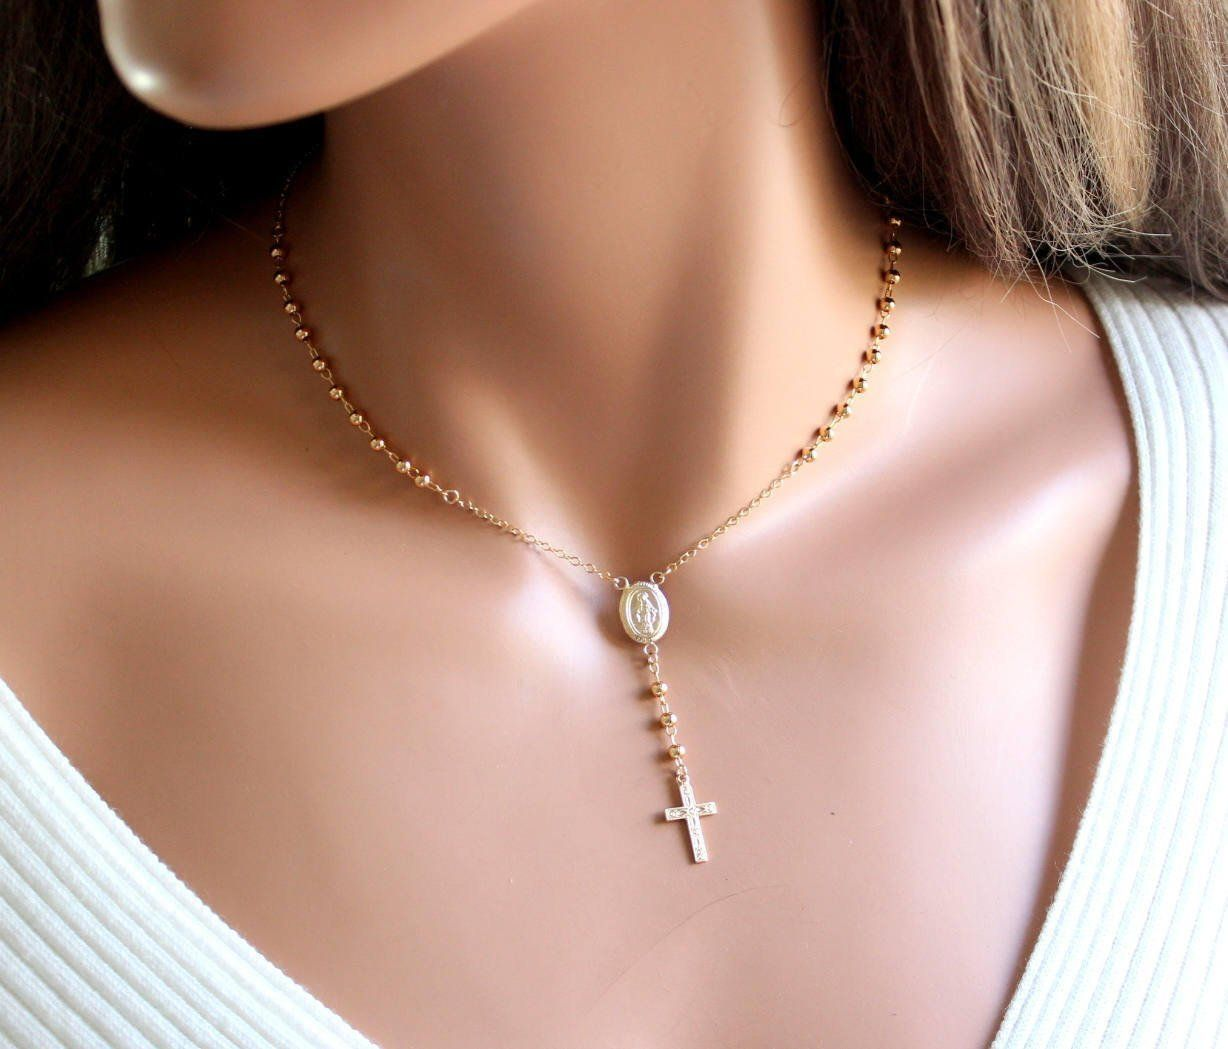 Superior Quality Rosary Necklace Gold Filled Sterling Silver Women Black Gold Jewelry Womens Necklaces Silver Classy Necklace